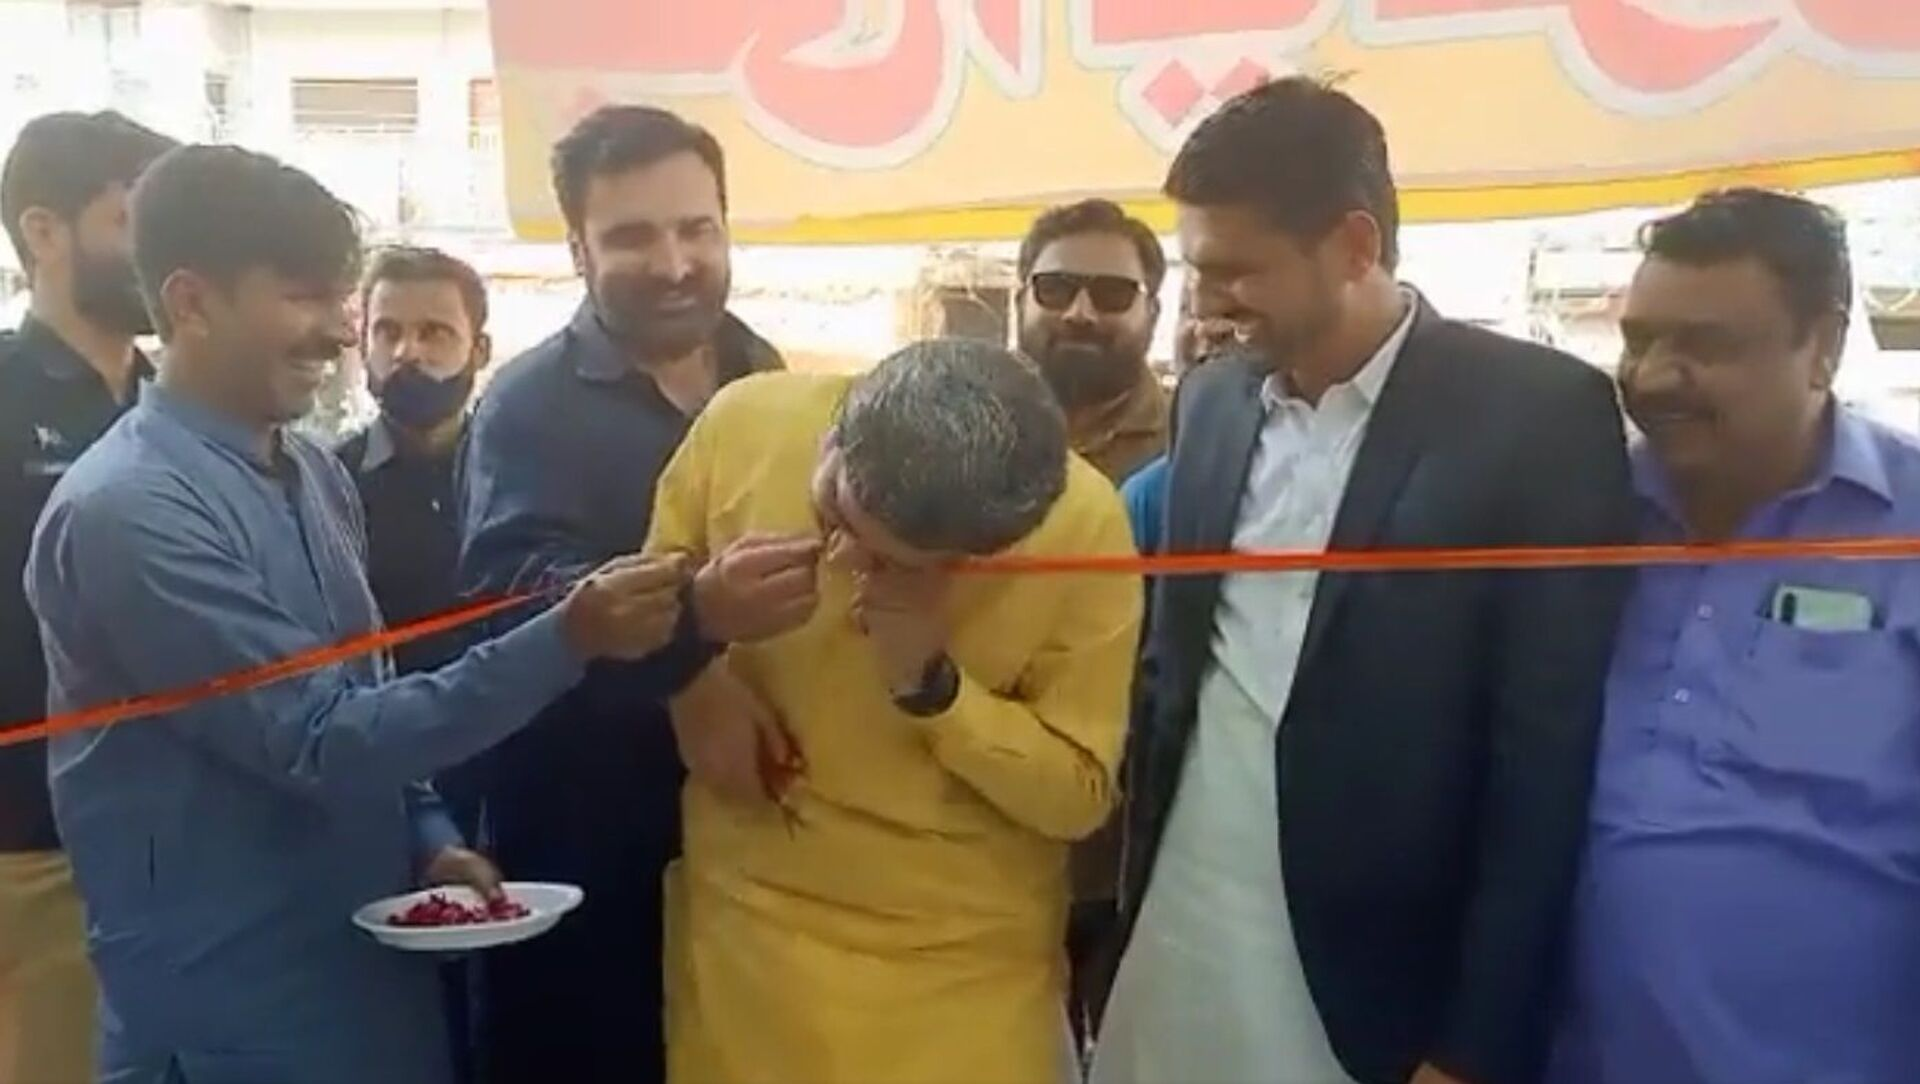 Unable to cut the ribbon with a blunt scissor, Pakistan Punjab's Jail minister and spokesperson Fayazchohanpti  did the inauguration job with his teeth - Sputnik International, 1920, 02.09.2021